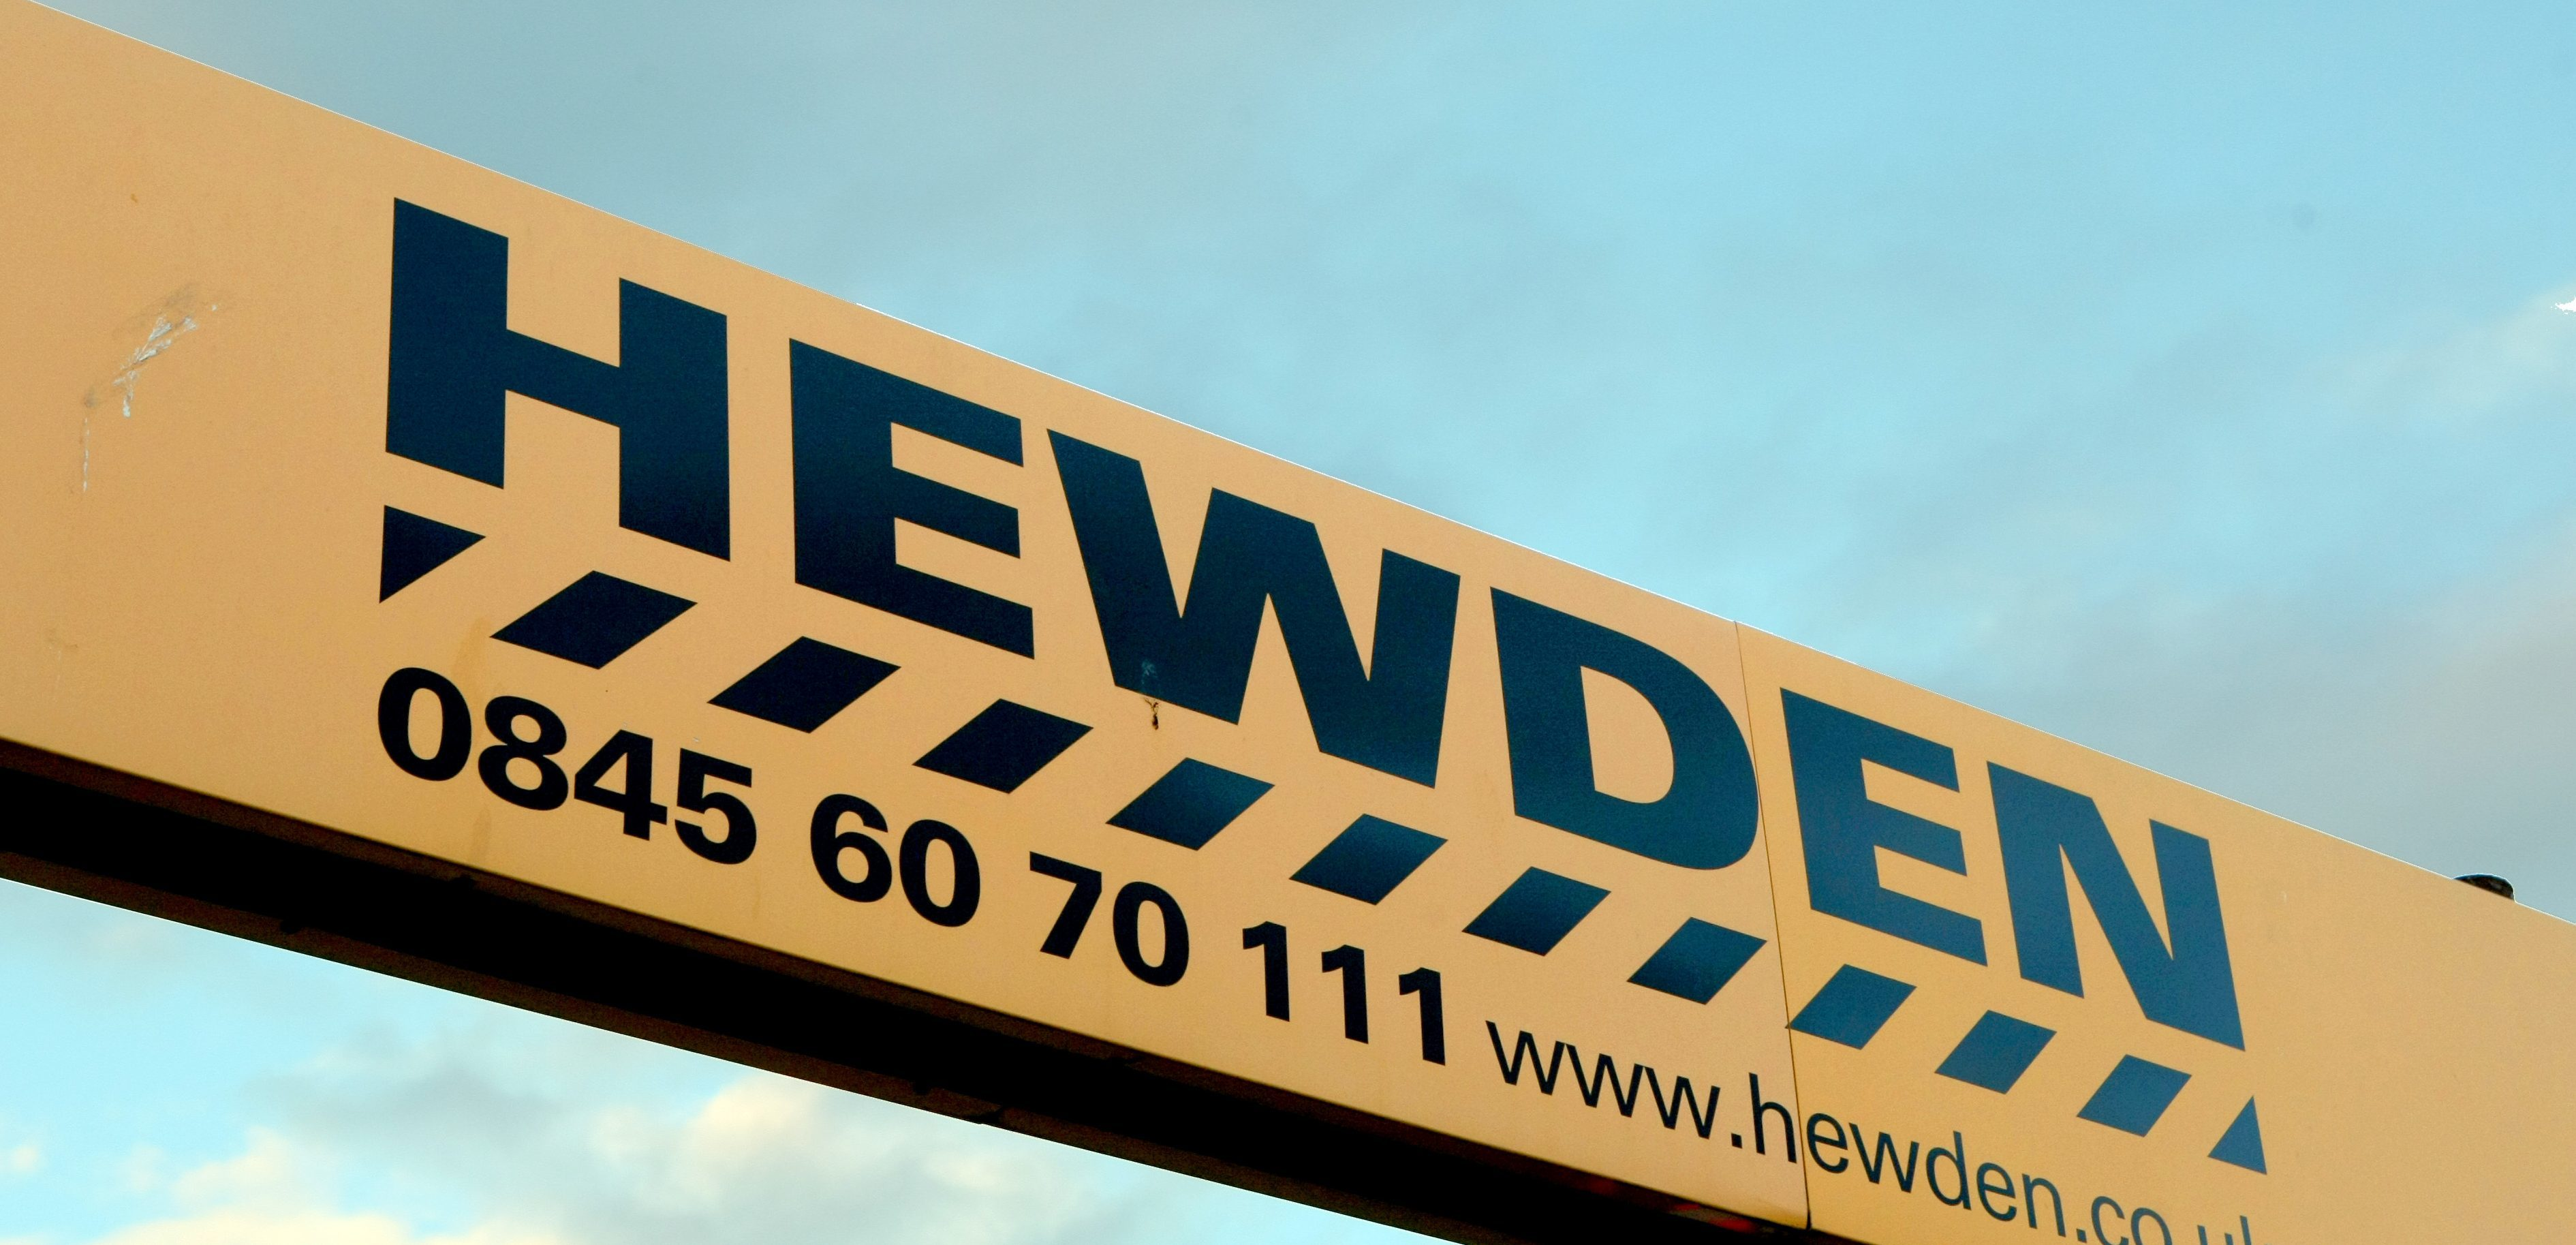 £2000 worth of batteries have been stolen from Dundee's Hewden depot.